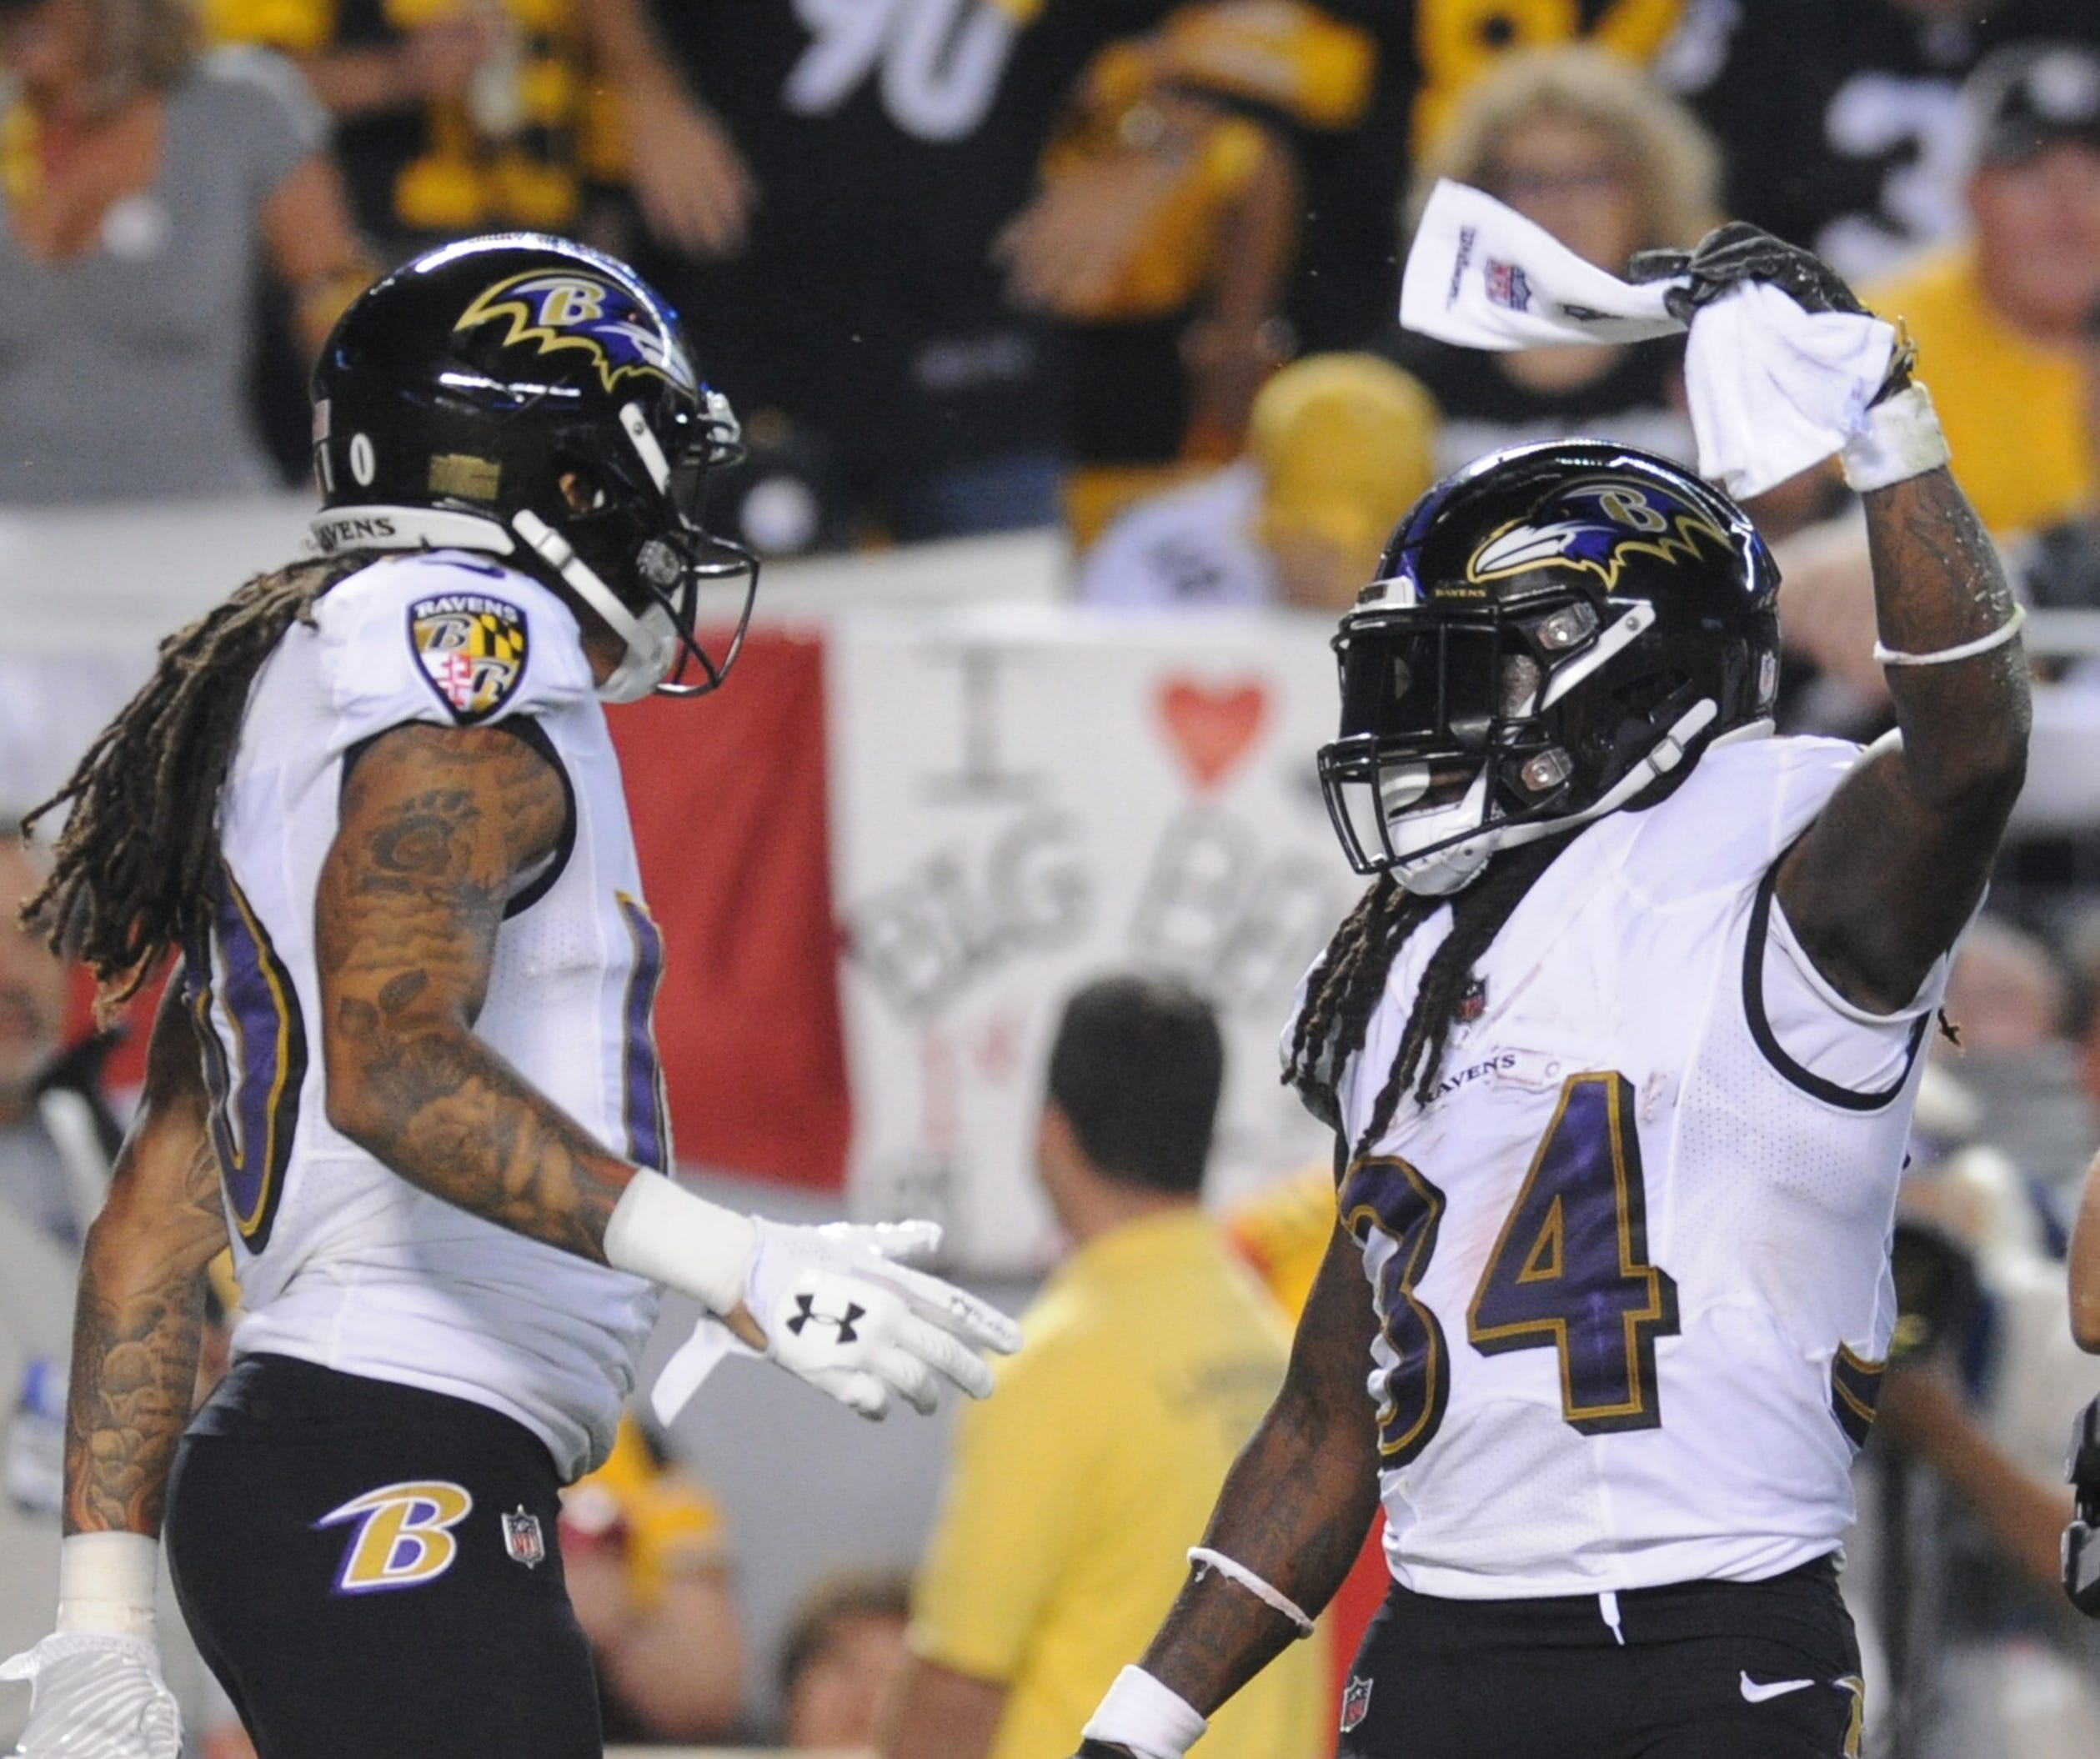 Nfl Baltimore Ravens At Pittsburgh Steelers